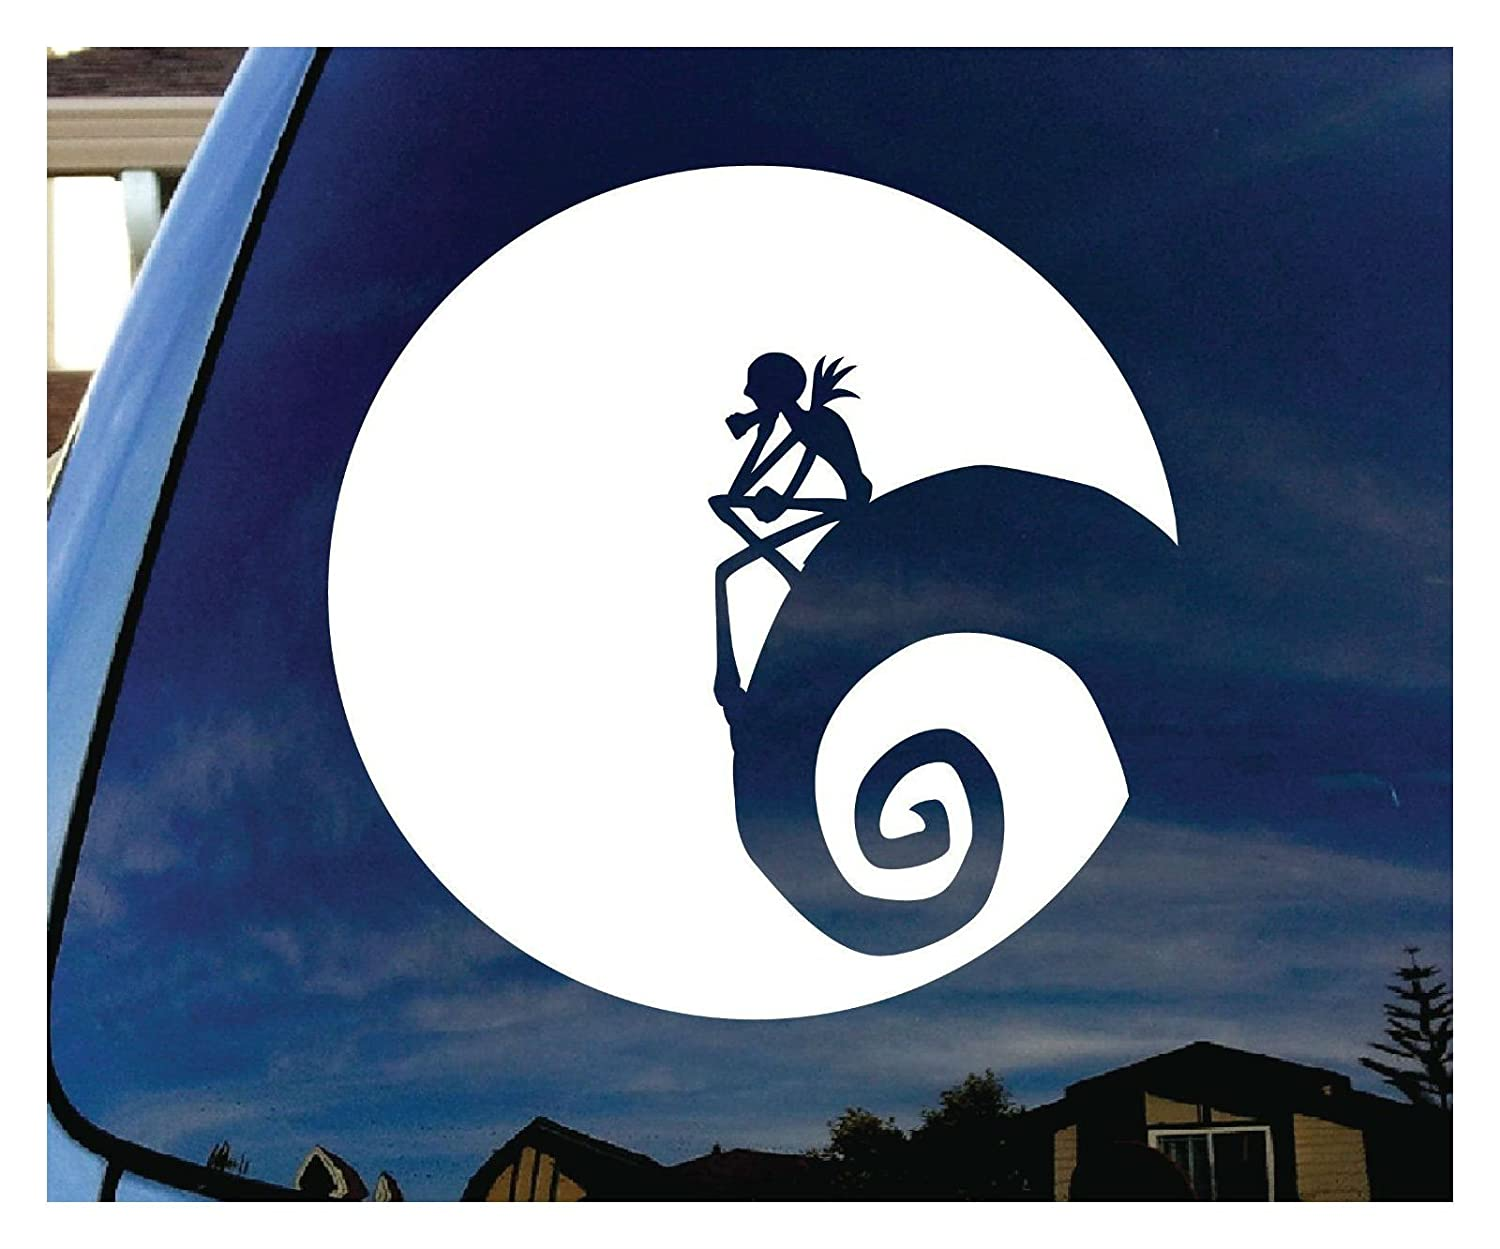 Amazon.com: Jack Nightmare Before Christmas Moon Car Window Vinyl ...